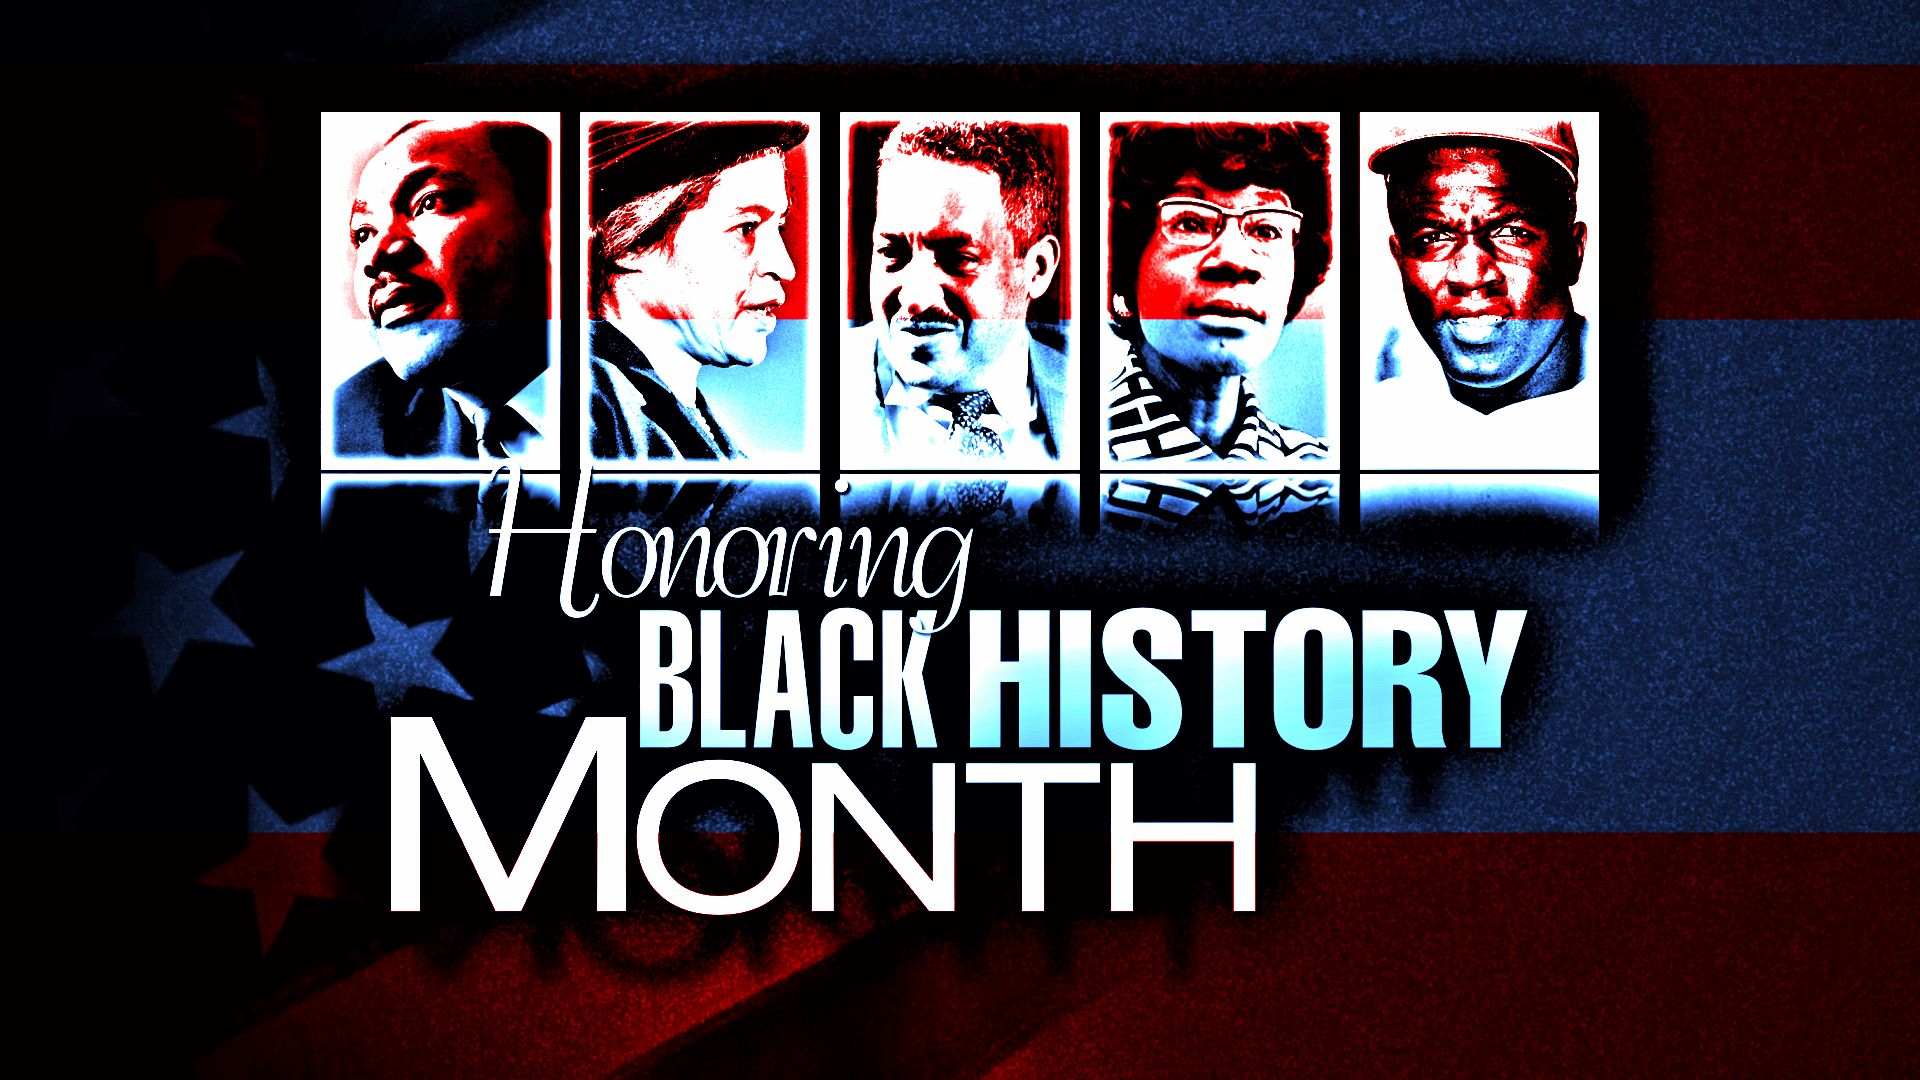 black history month February is black history month in the usa it's a great opportunity to learn about influential black leaders, scientists, athletes, and celebrities.